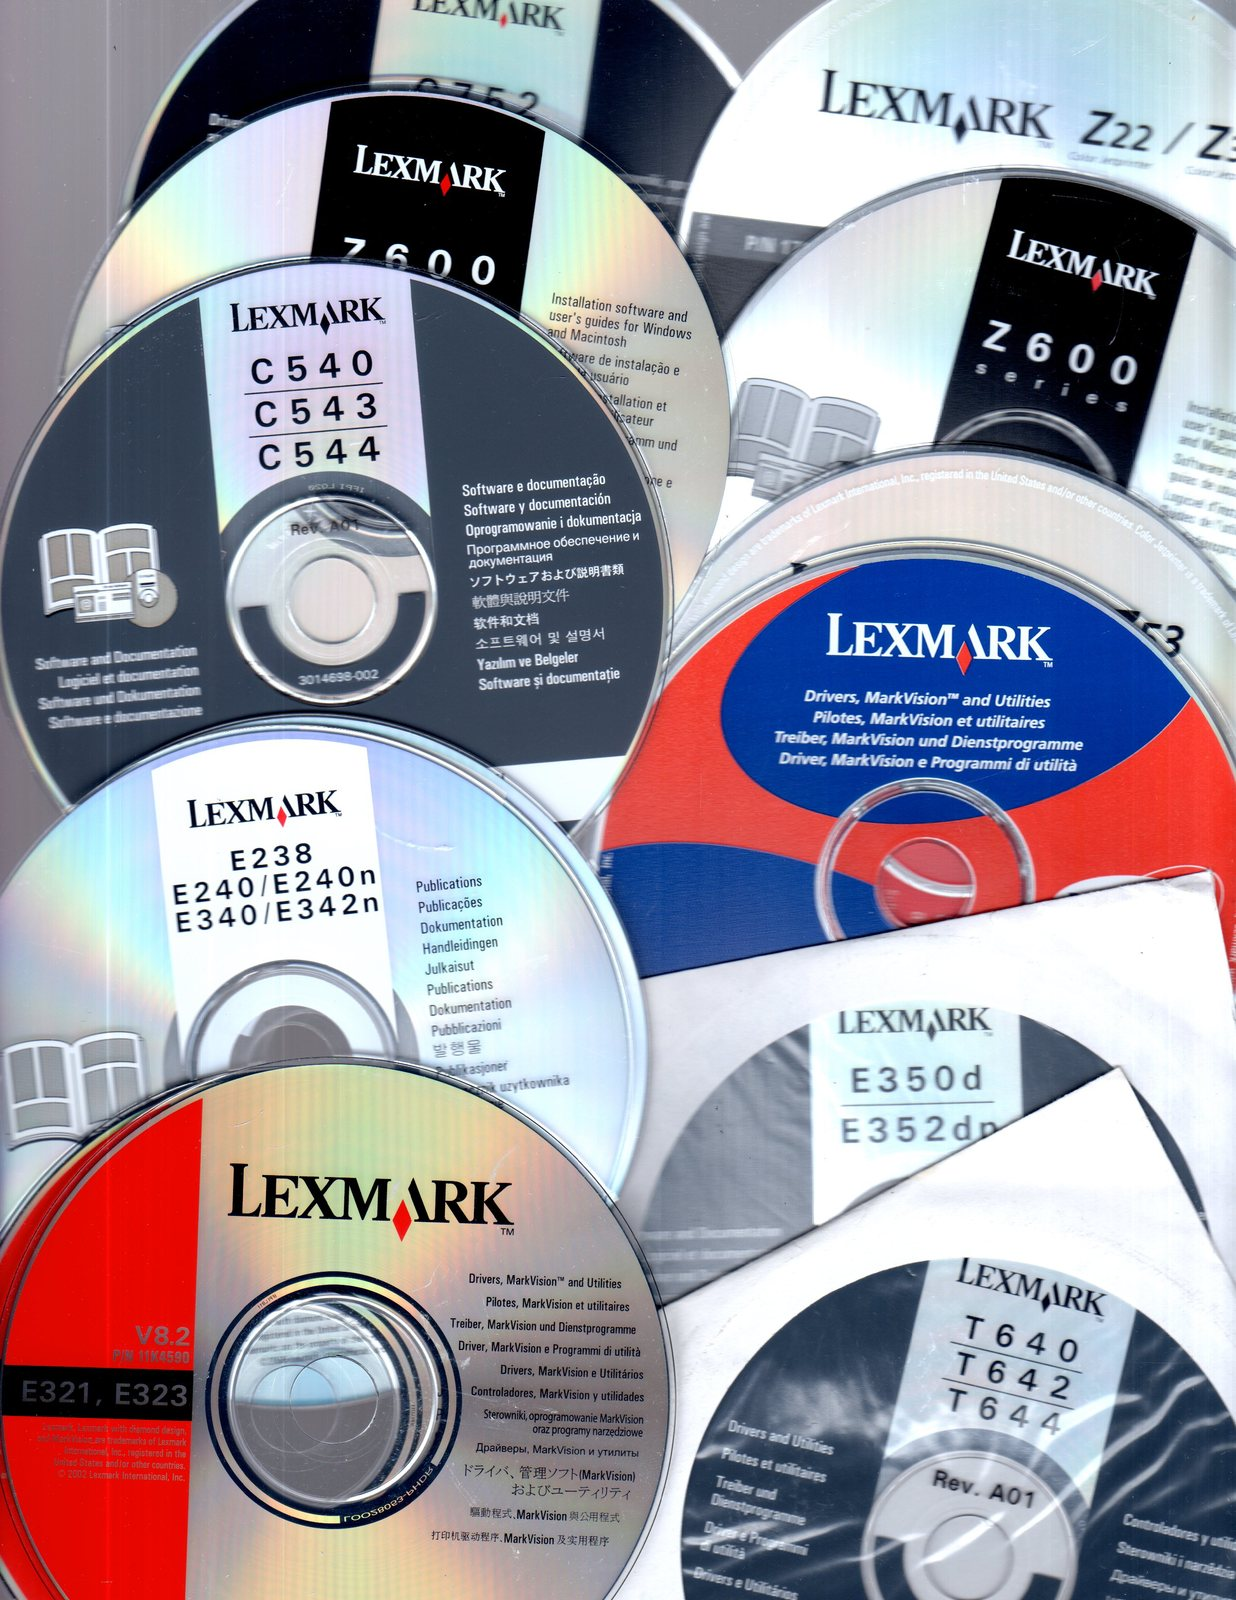 Lexmark Printer Operating System Software (!0 Printers)